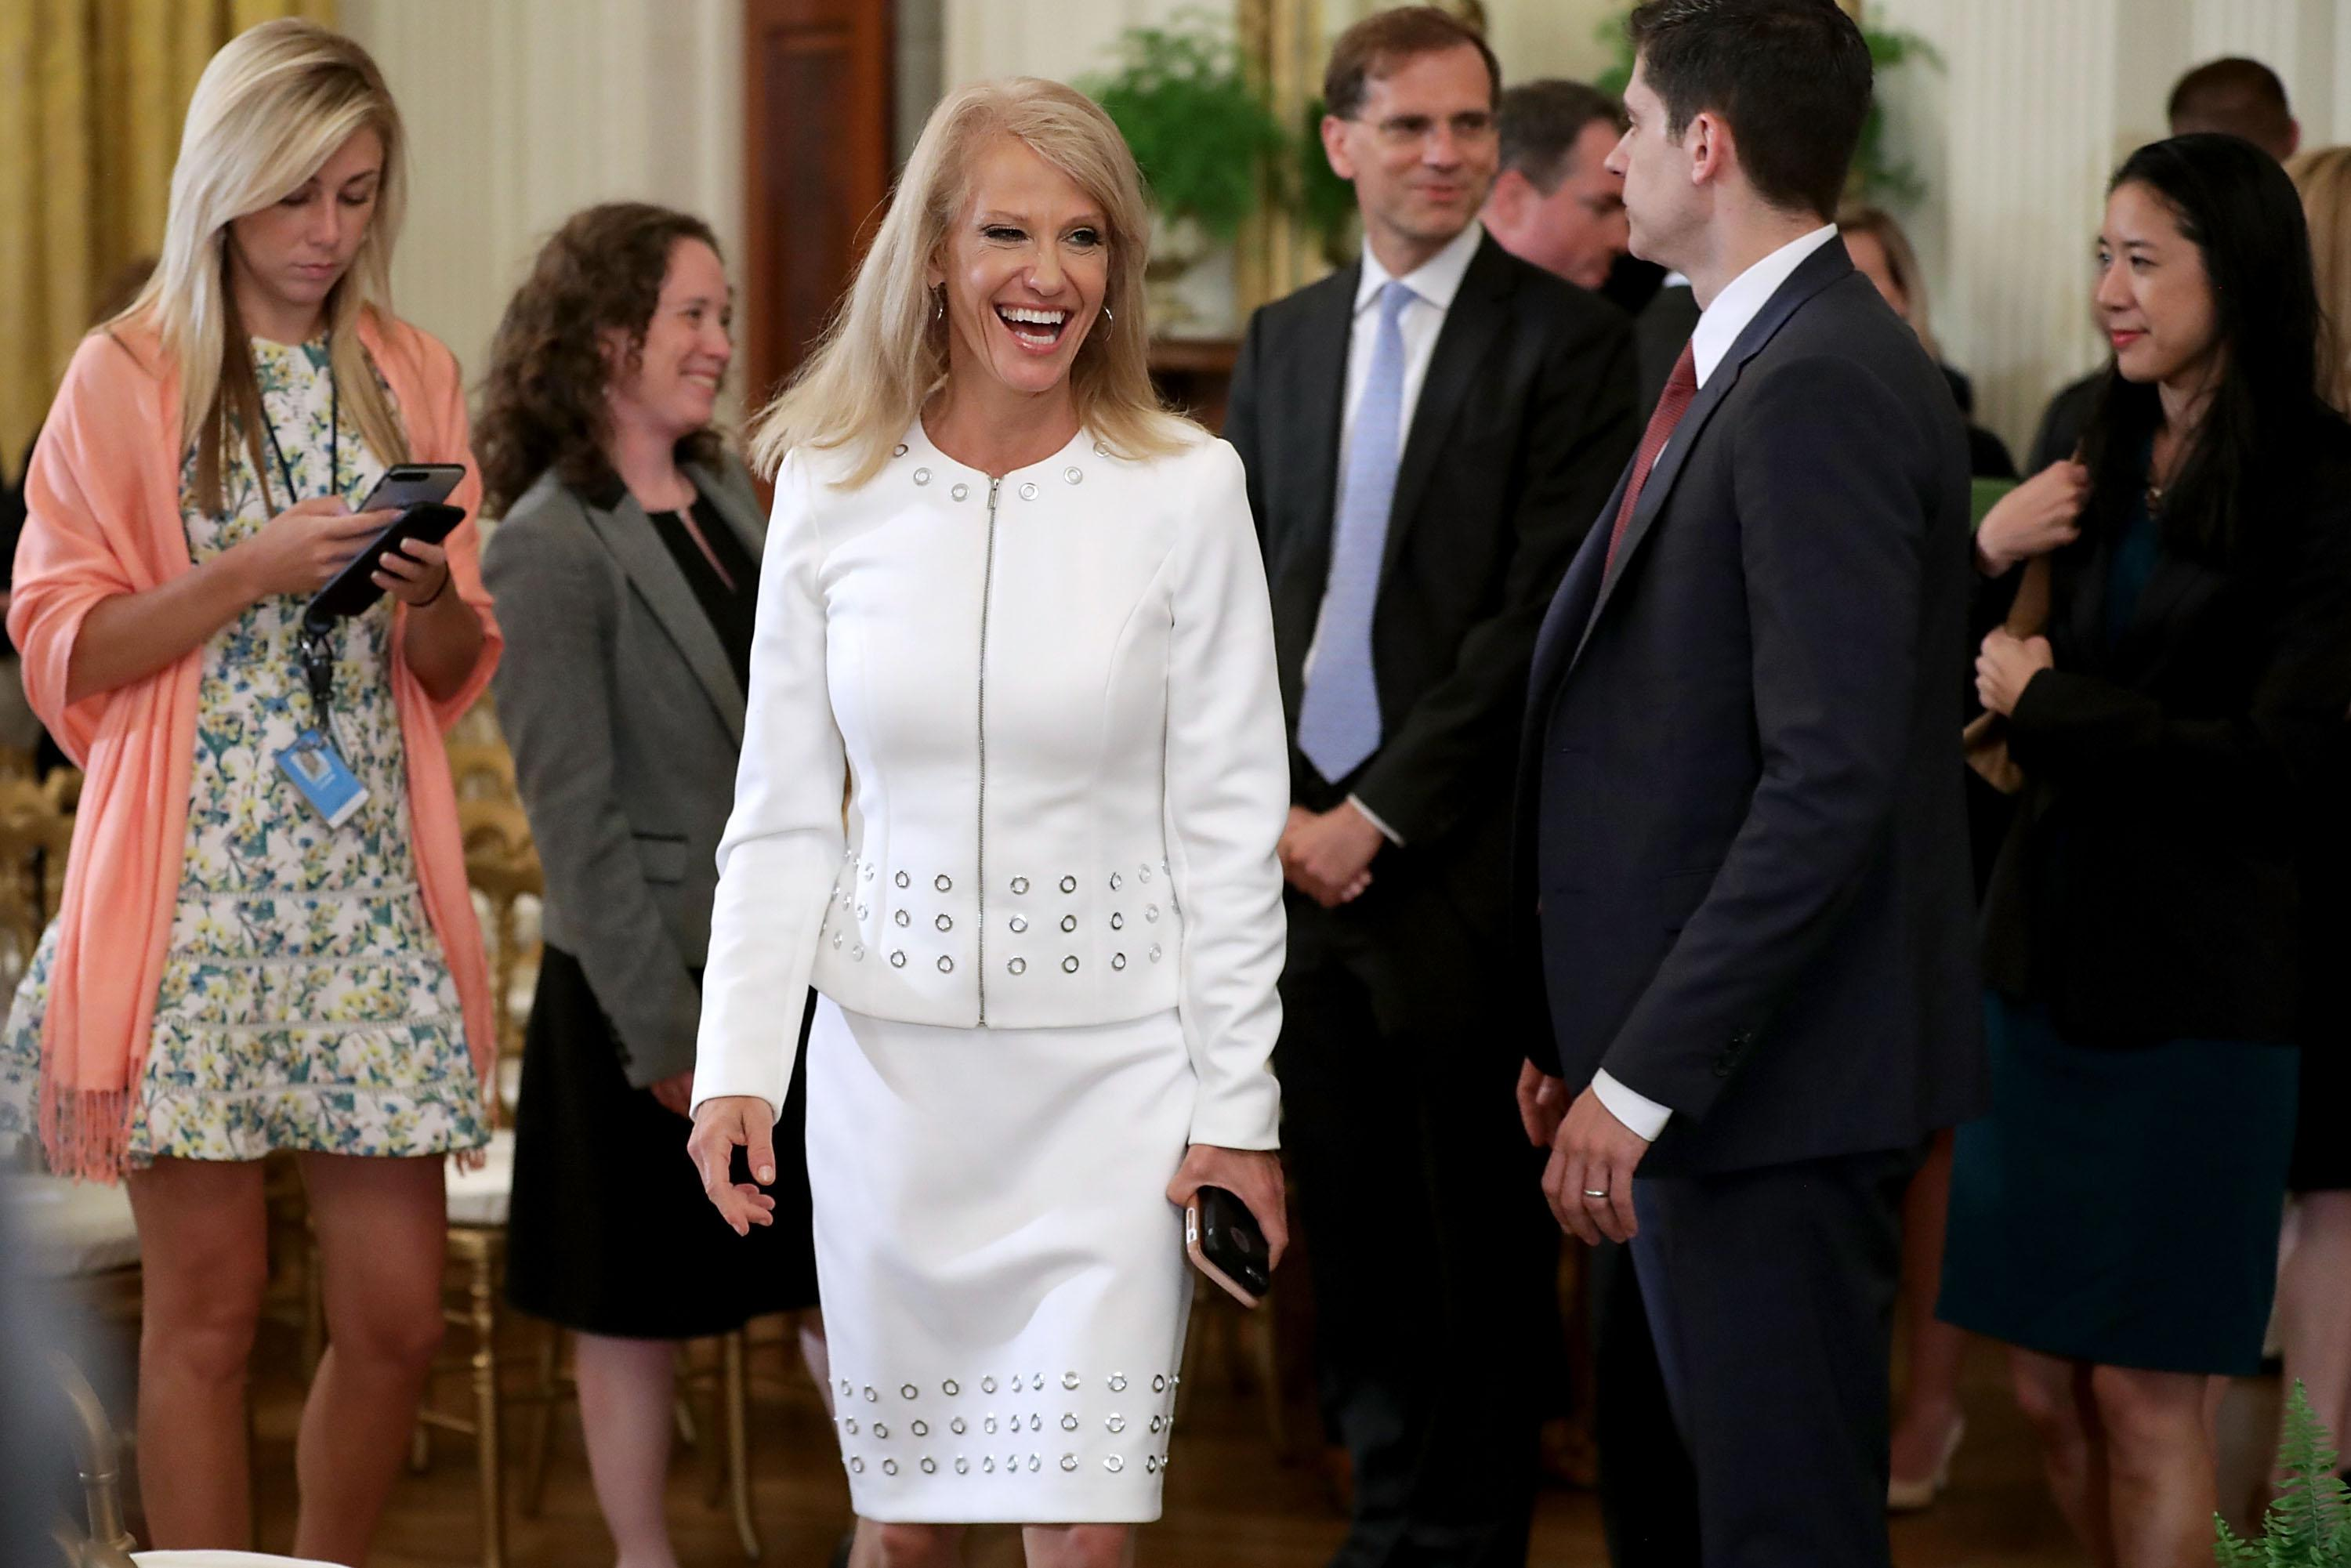 Counselor to the president Kellyanne Conway leaves the East Room after President Donald Trump announced Judge Brett M. Kavanaugh as his nominee to the United States Supreme Court at the White House July 9, 2018 in Washington, D.C.